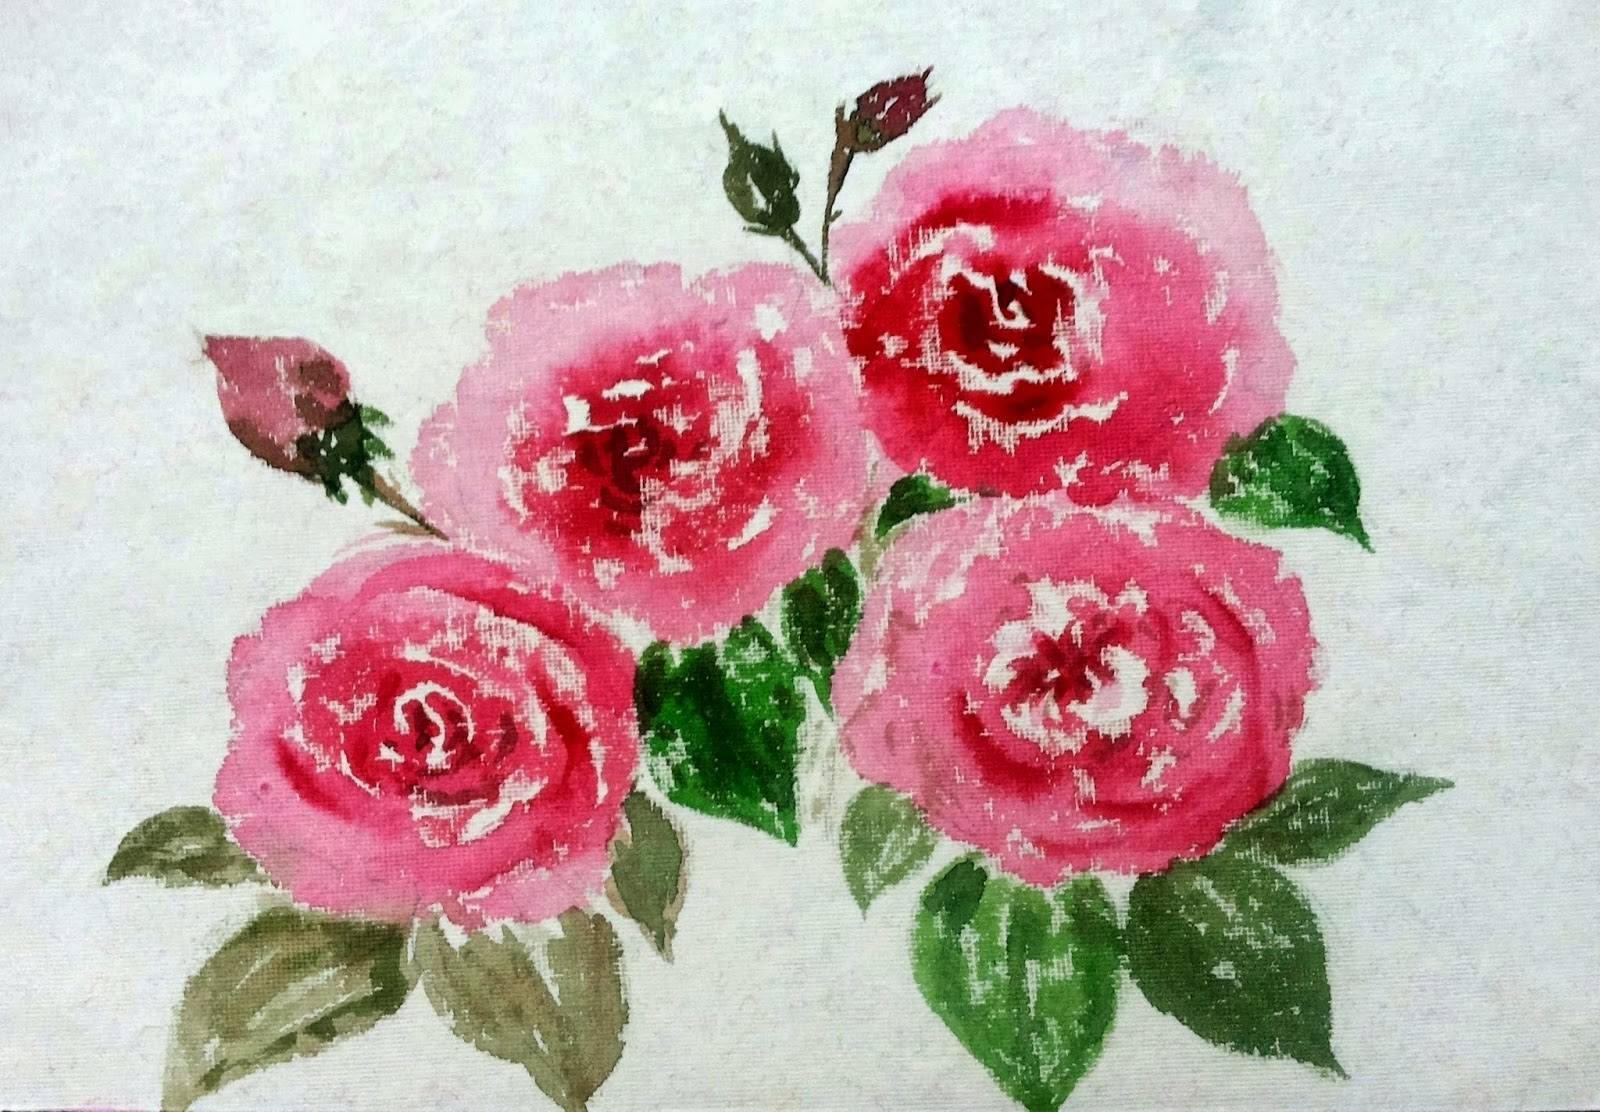 pinkroses, roses, flowers, floral, four, valentine, bouquet, love, romance, handmade